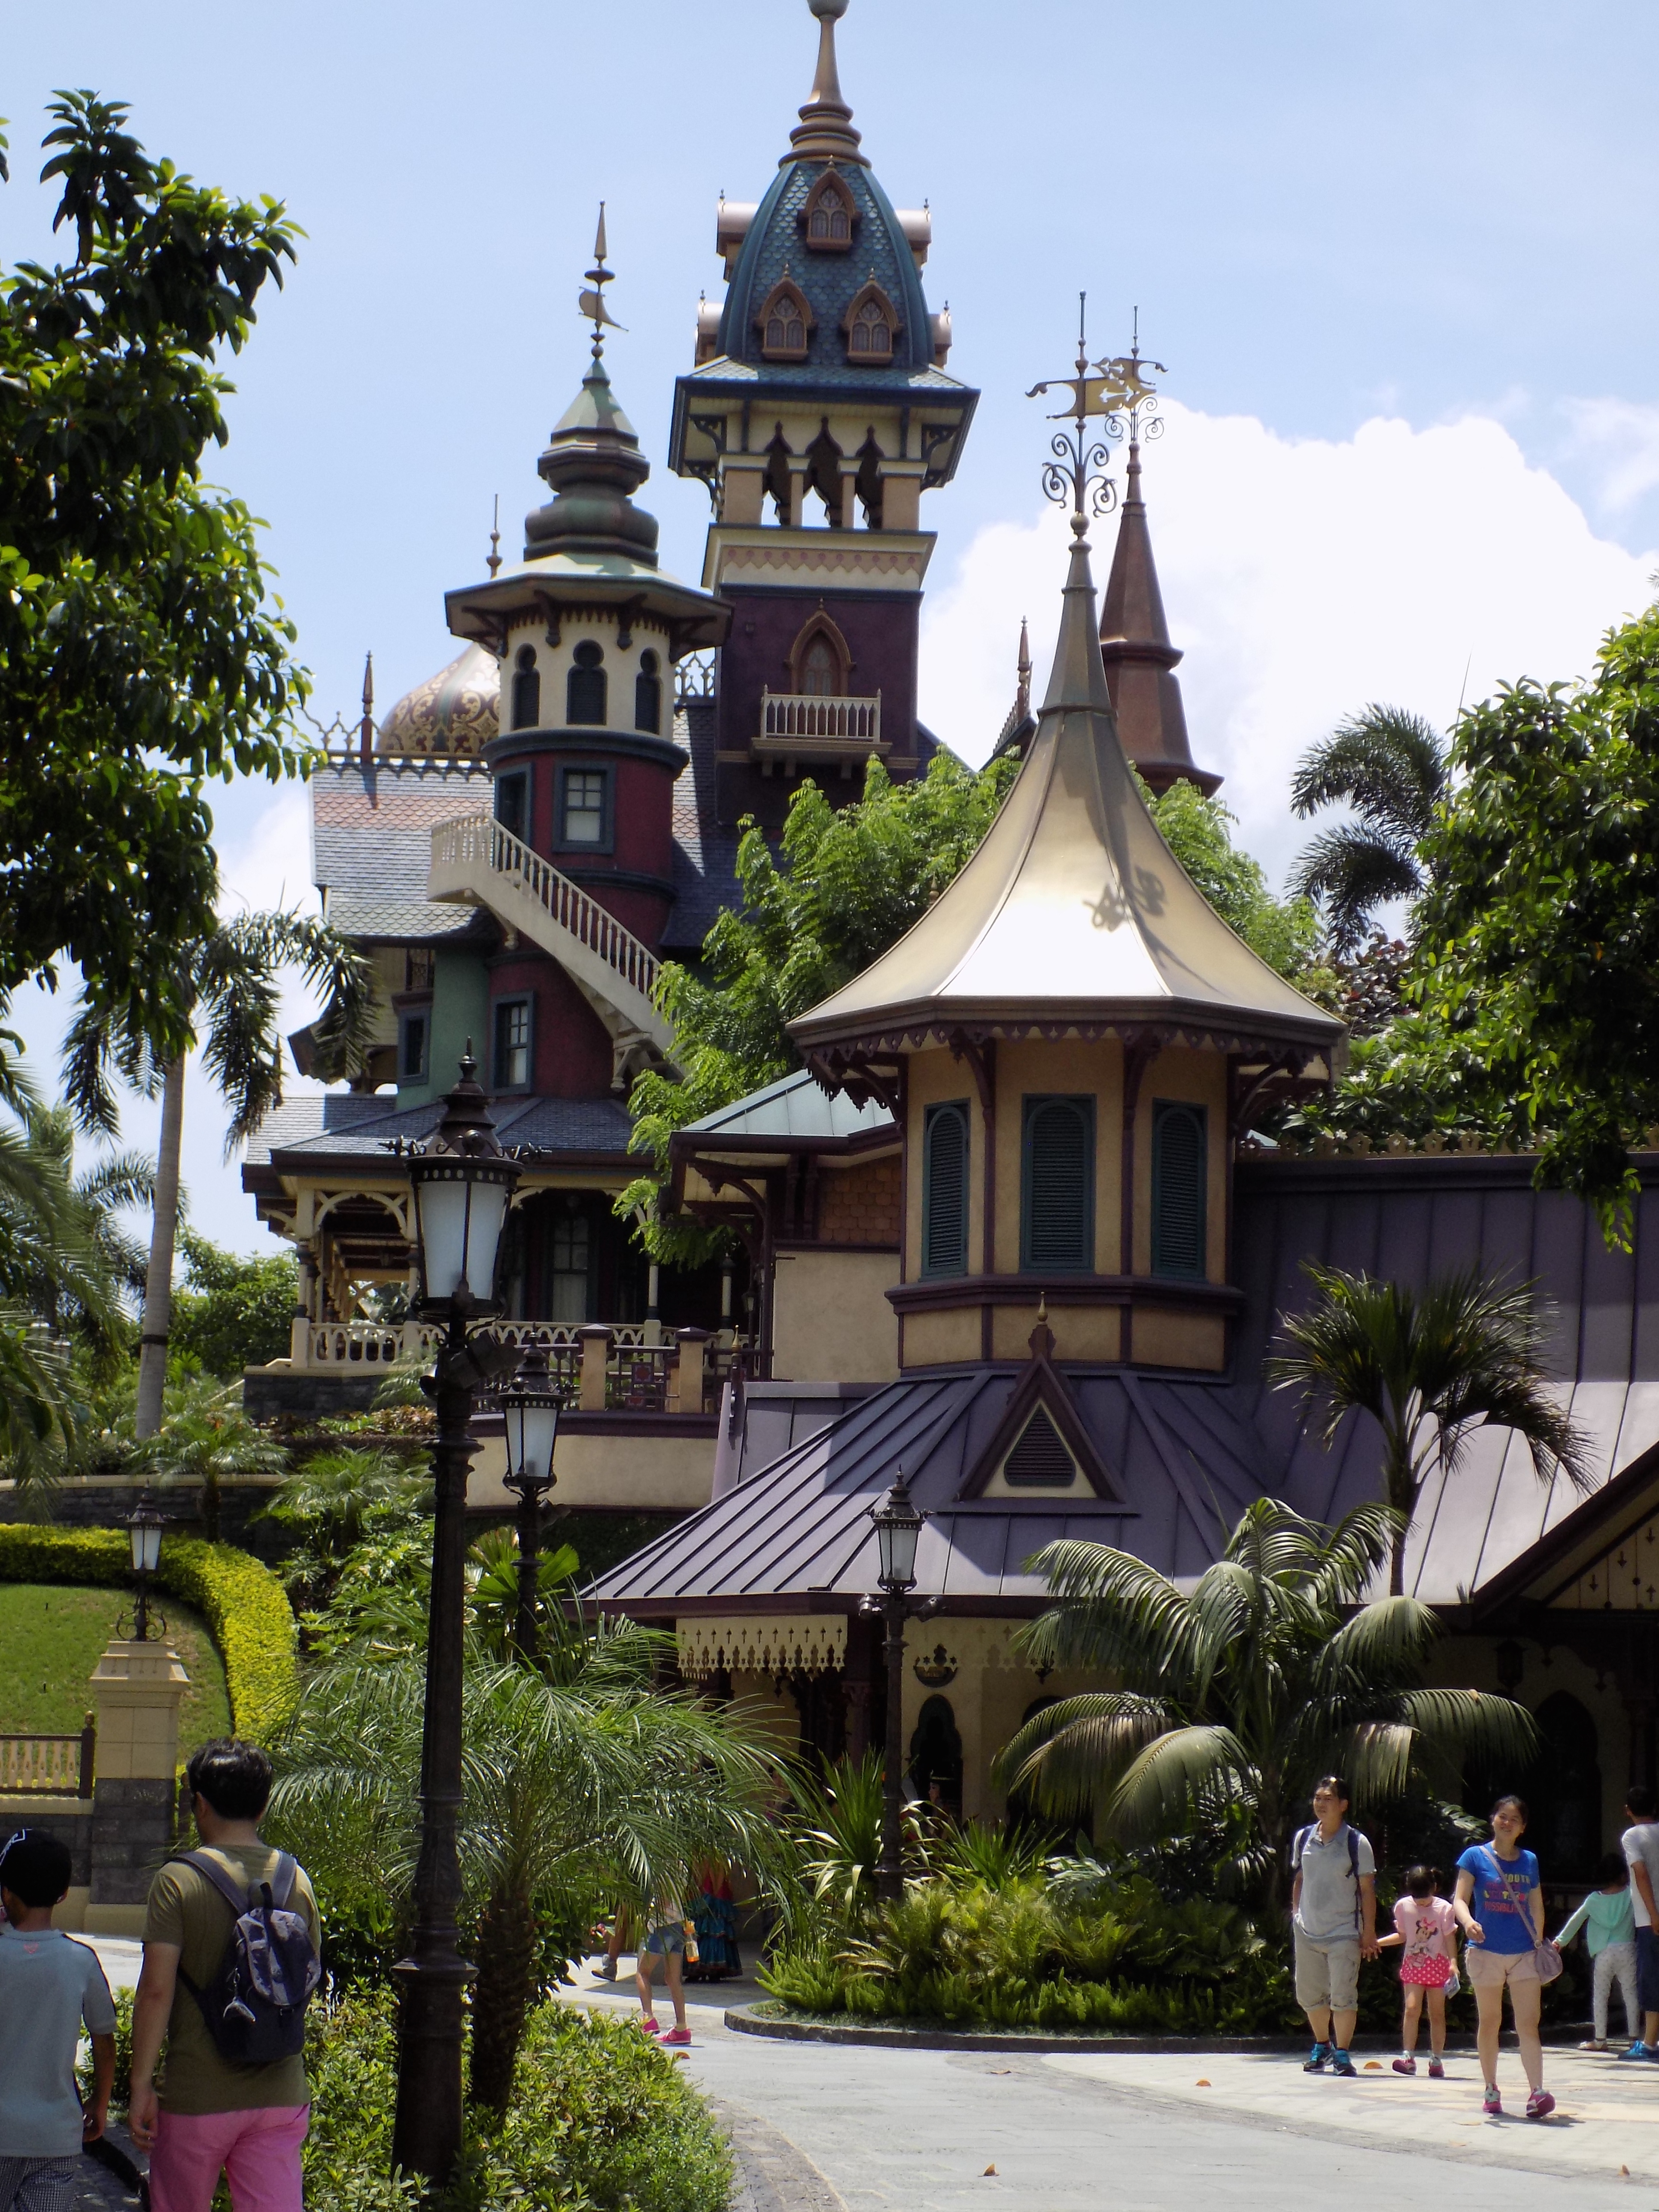 Mystic Manor looks completely different from one side to the next - just as different as the experience within the ride from all other Haunted Mansions